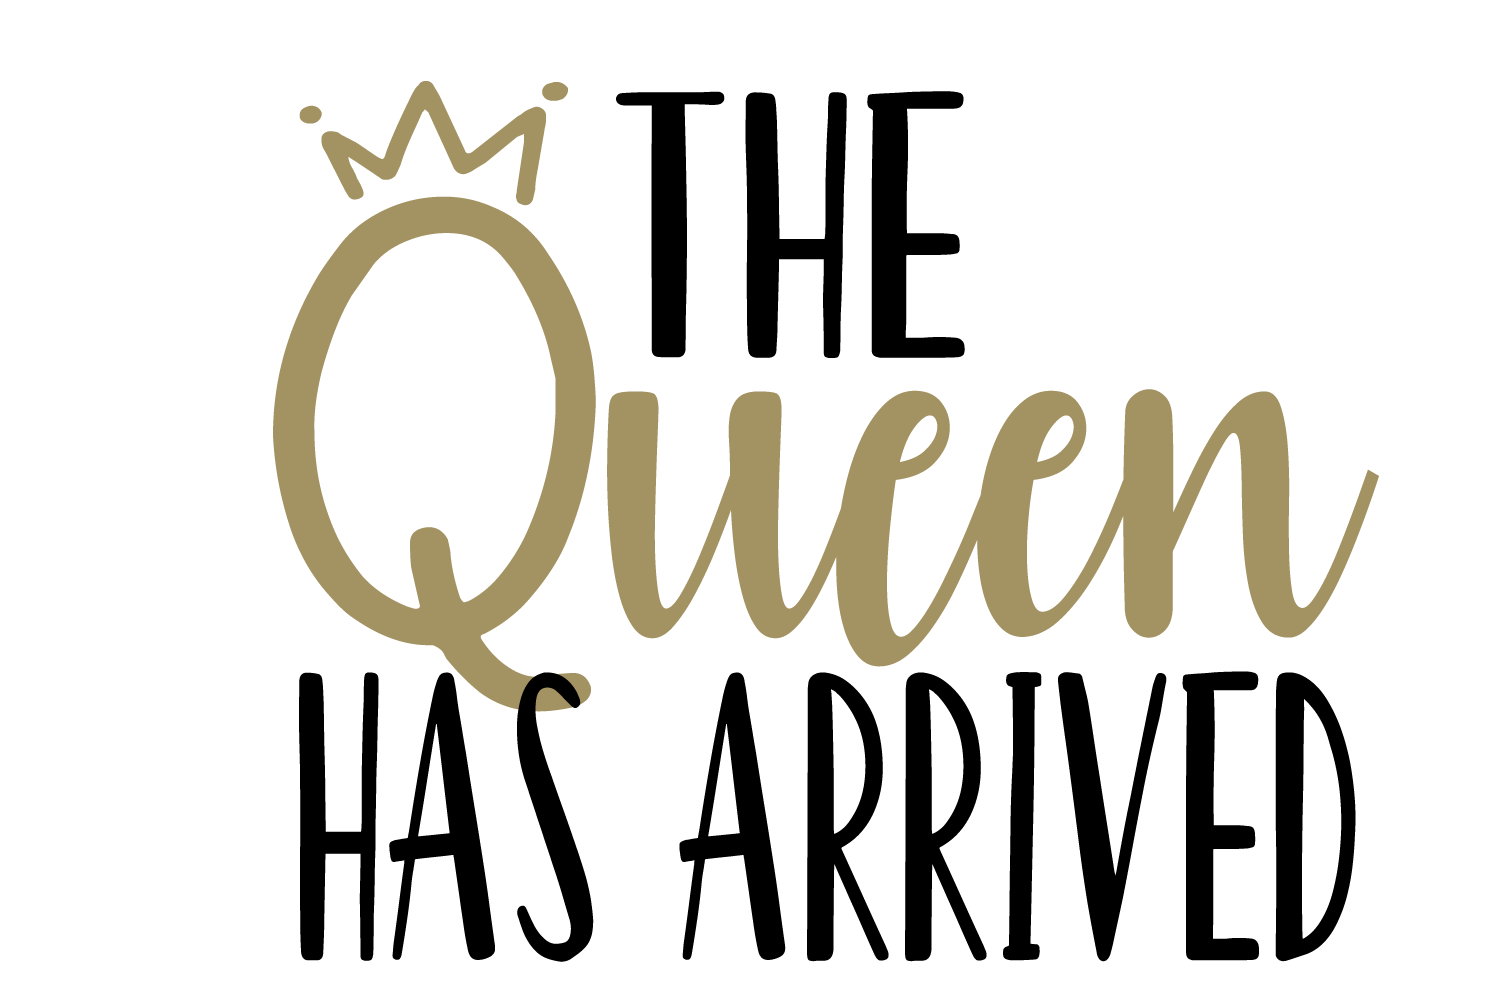 Download Free The Queen Has Arrived New Baby Graphic By Krazykittyimages for Cricut Explore, Silhouette and other cutting machines.